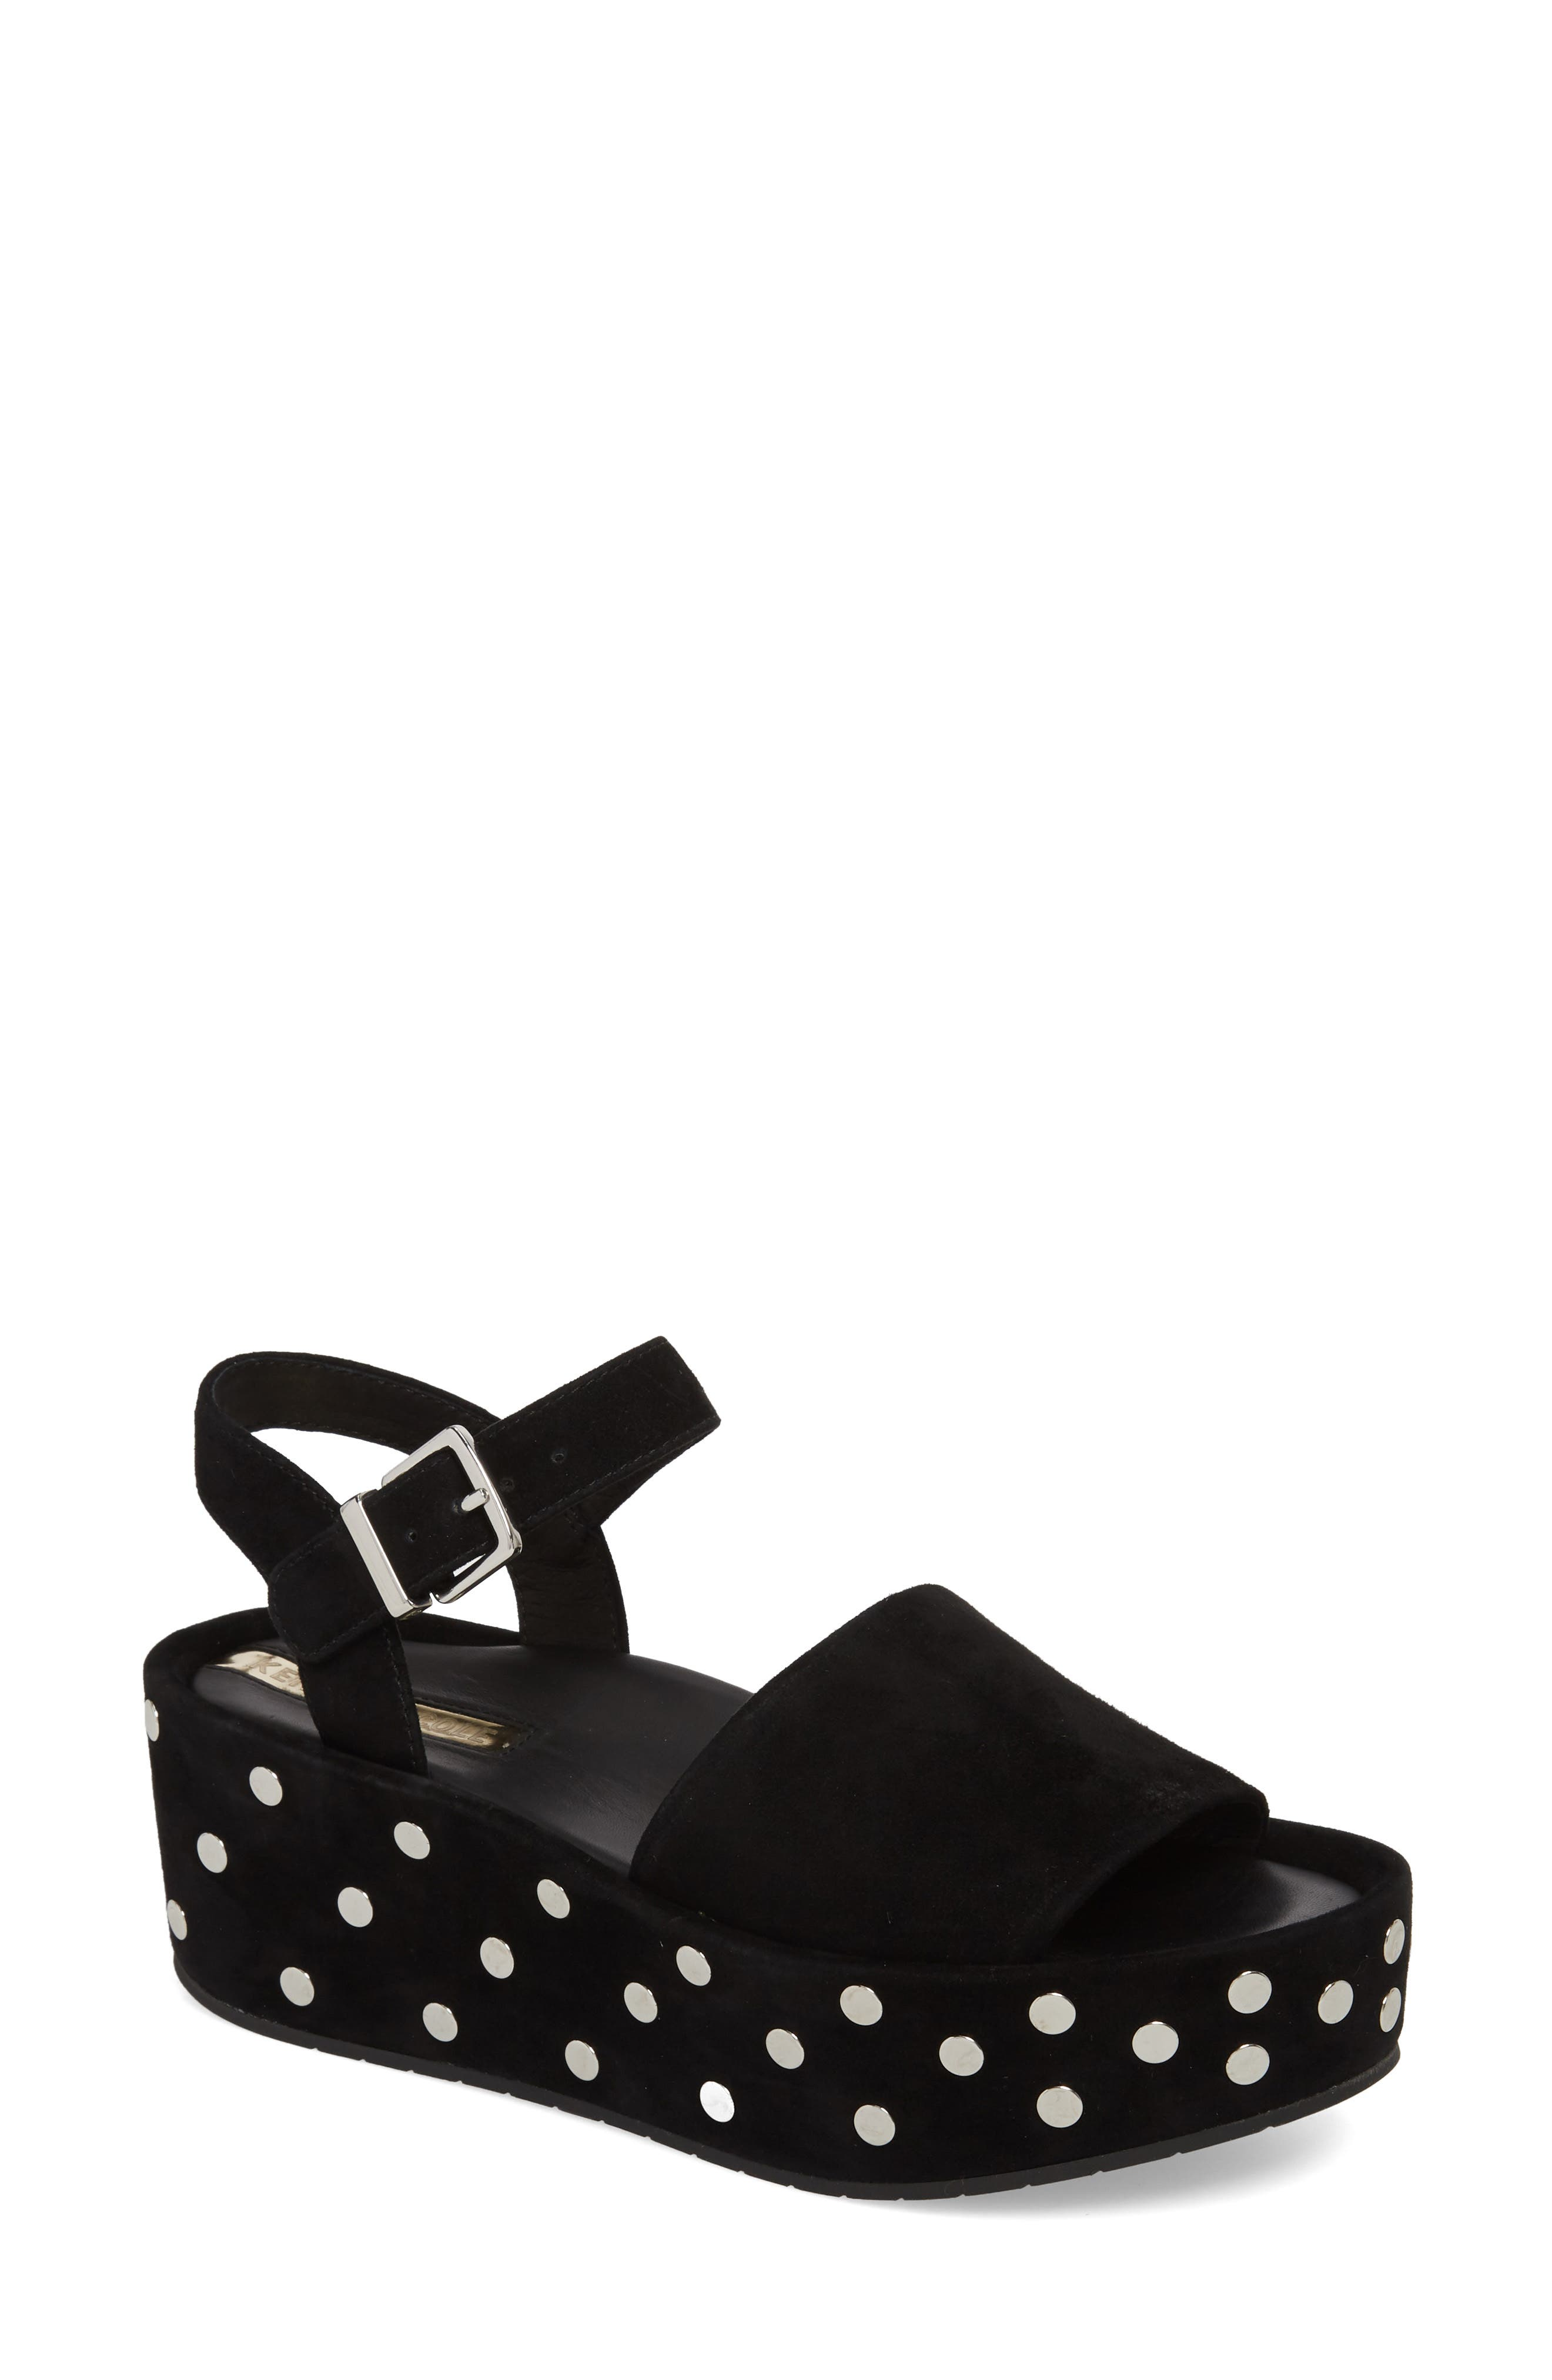 Kenneth Cole New York Danton Studs Platform Sandal (Women)